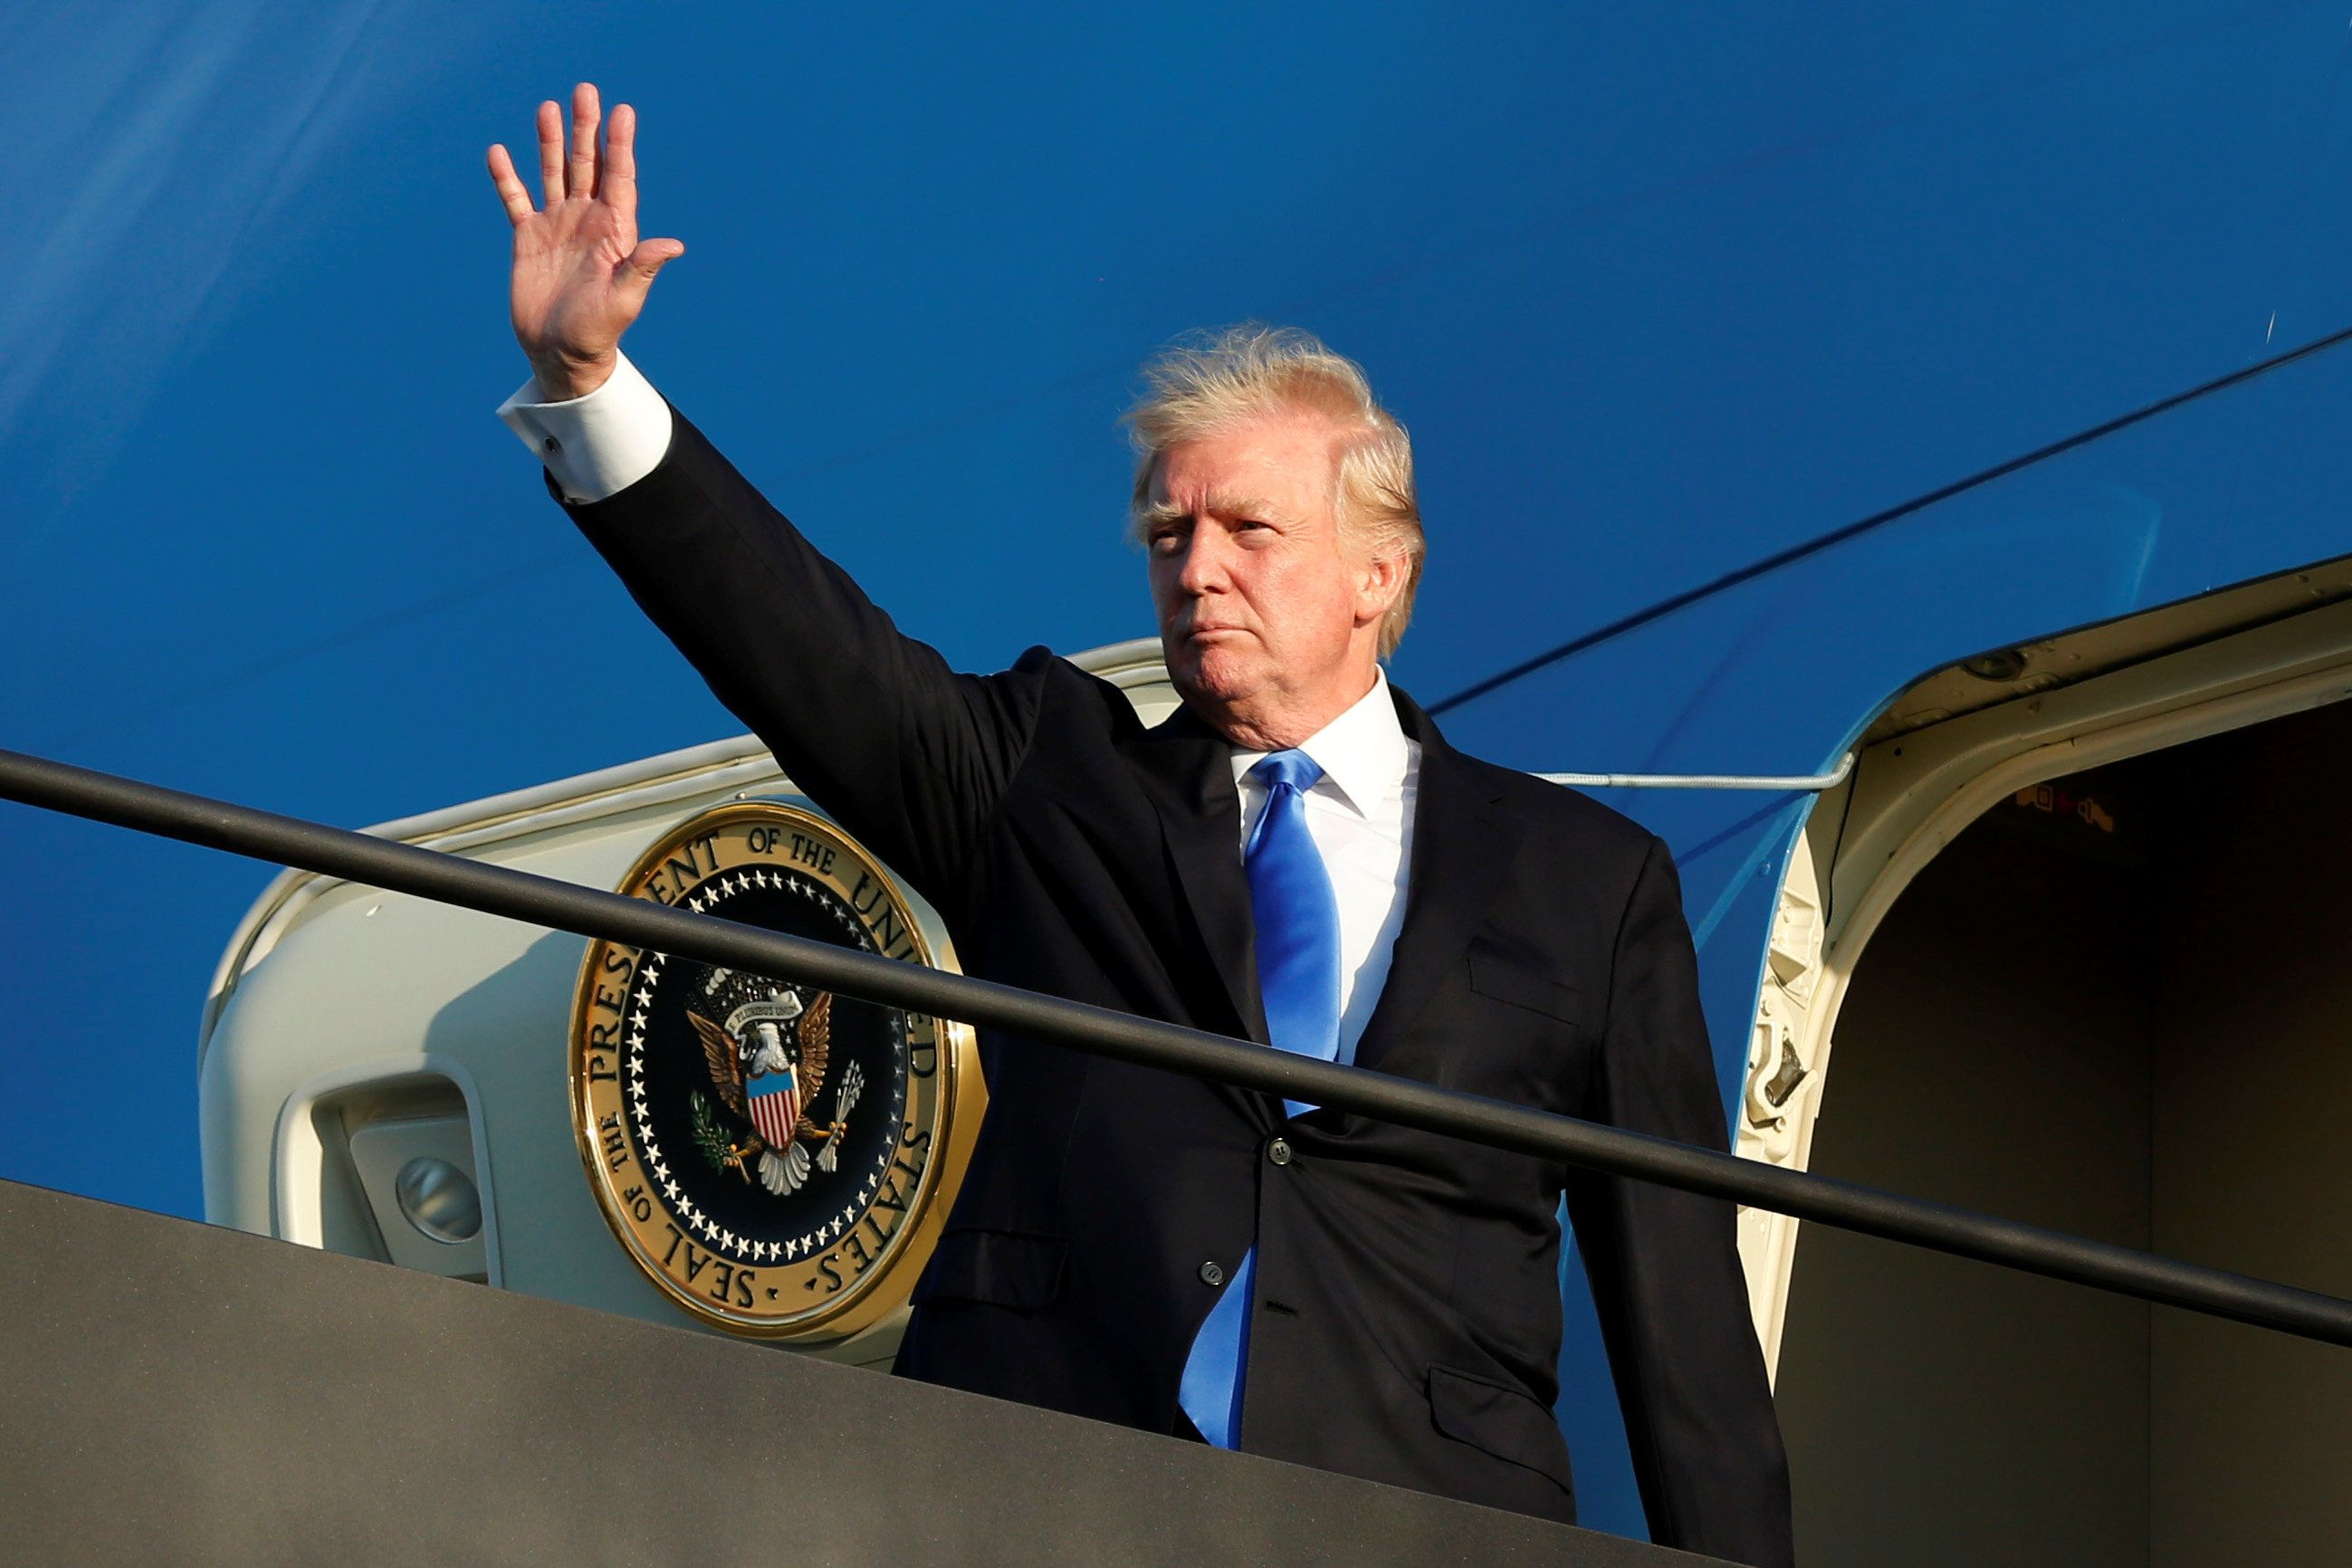 U.S. President Donald Trump waves before his departs from Newark Liberty International airport after a weekend at Trump National Golf Club in Bedminster, New Jersey, U.S., June 11, 2017. REUTERS/Yuri Gripas